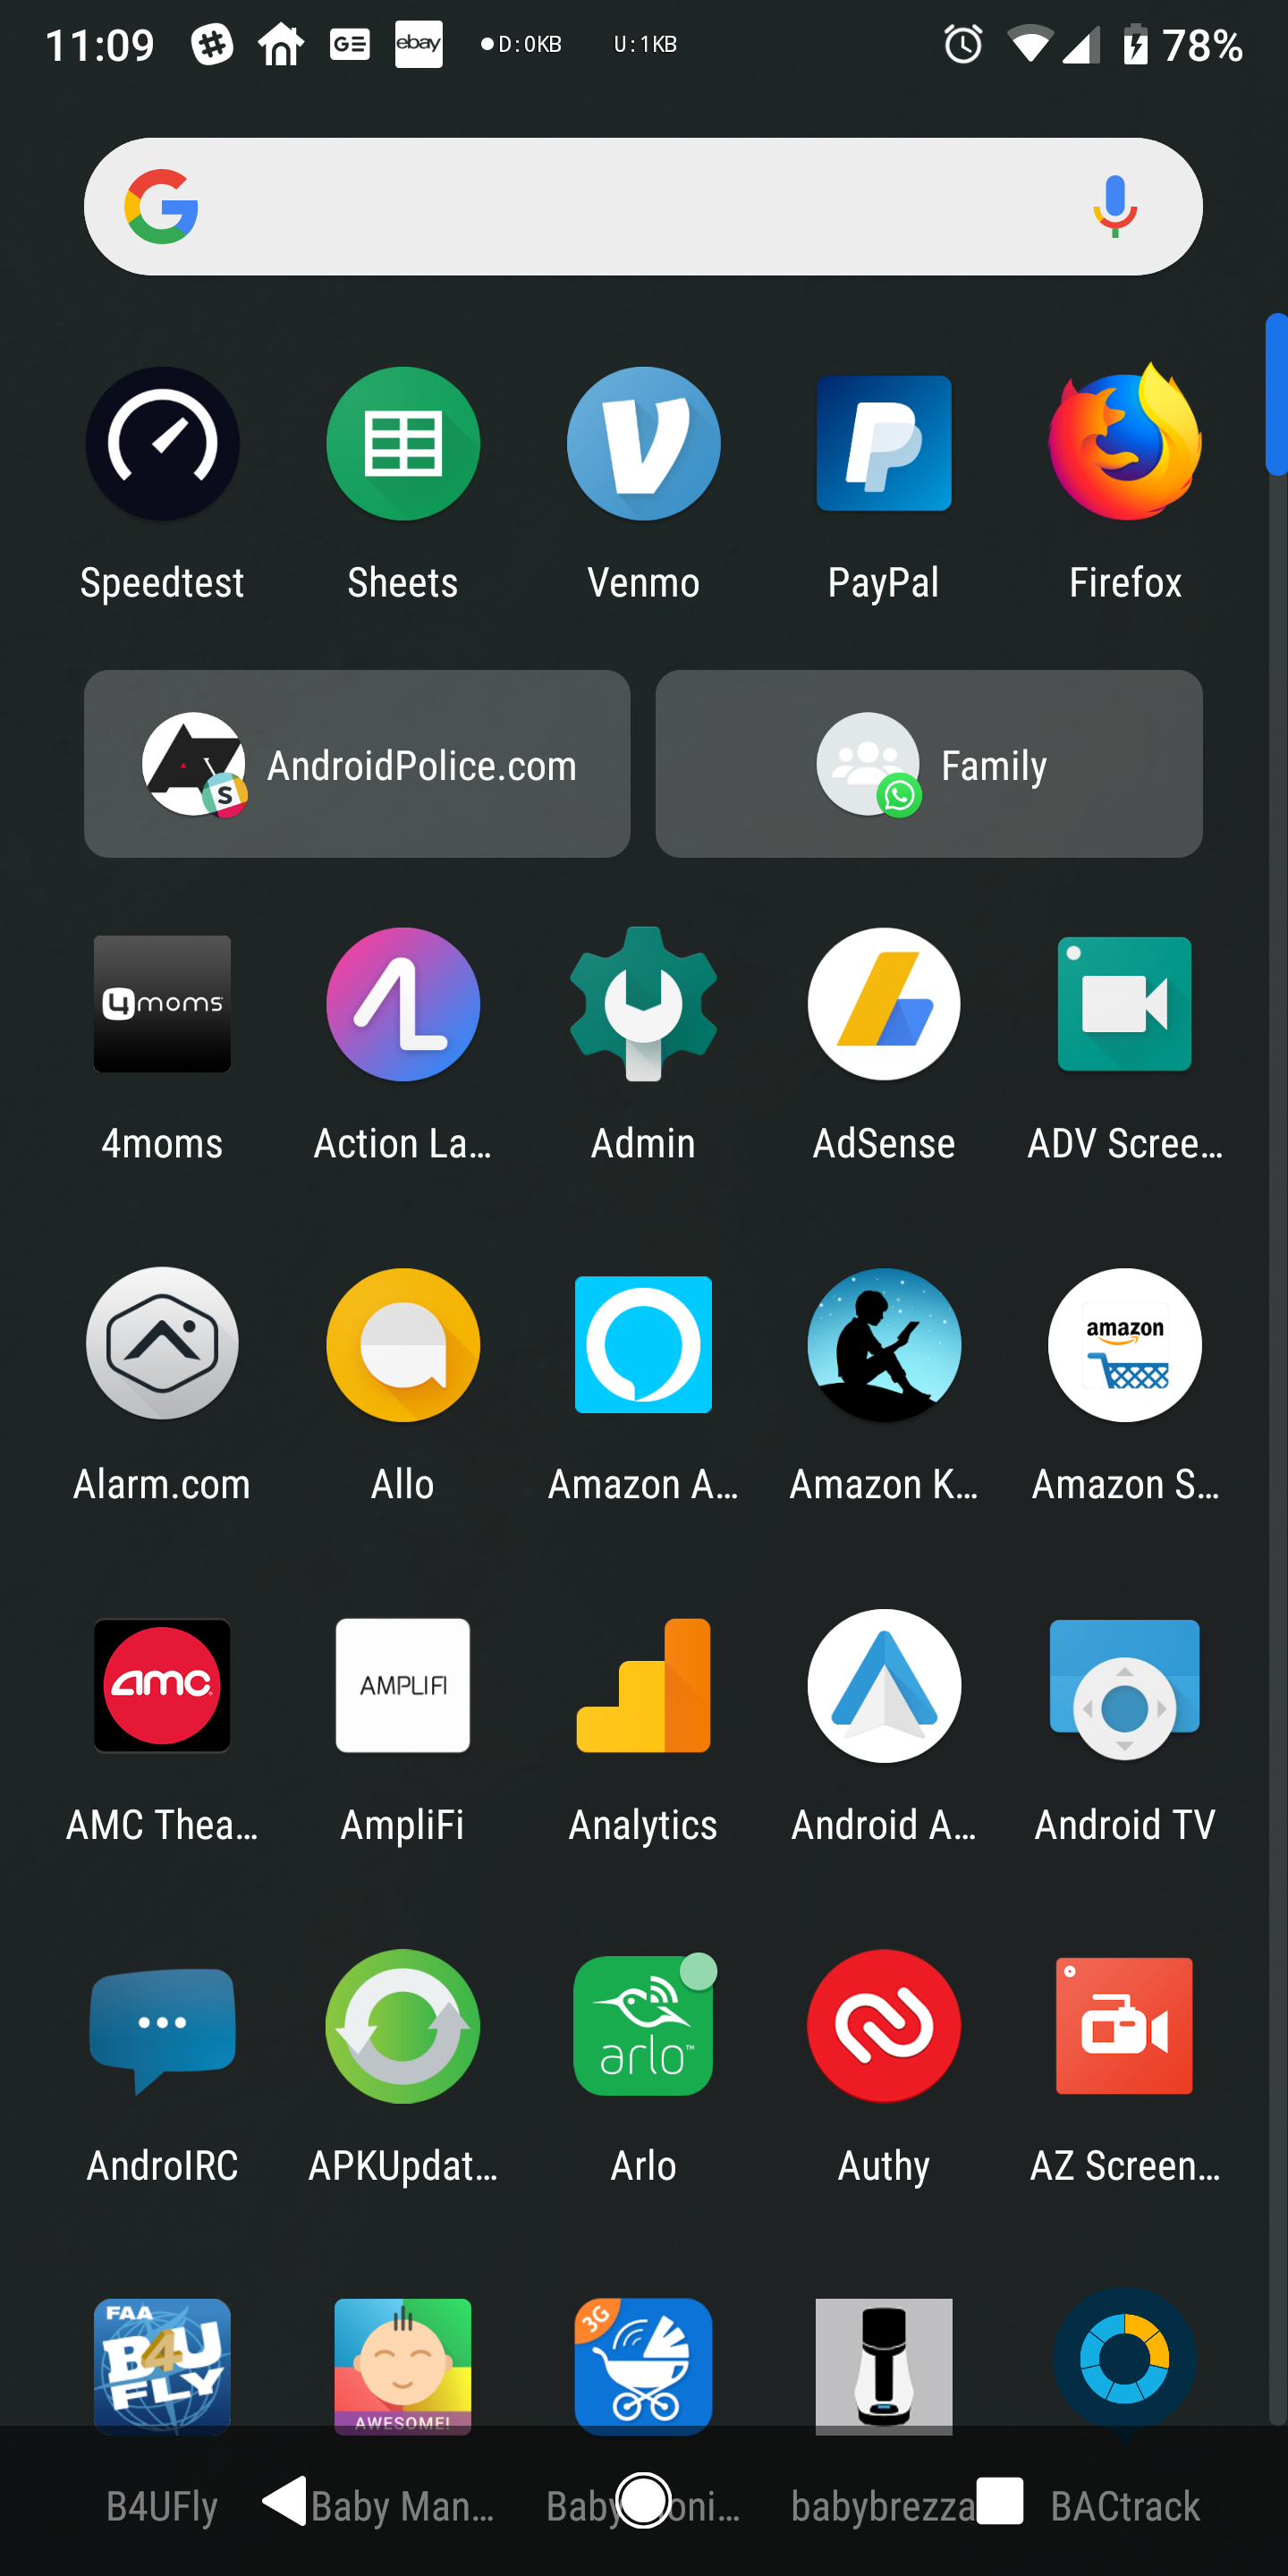 Manual toggle for dark and light launcher themes debuts in